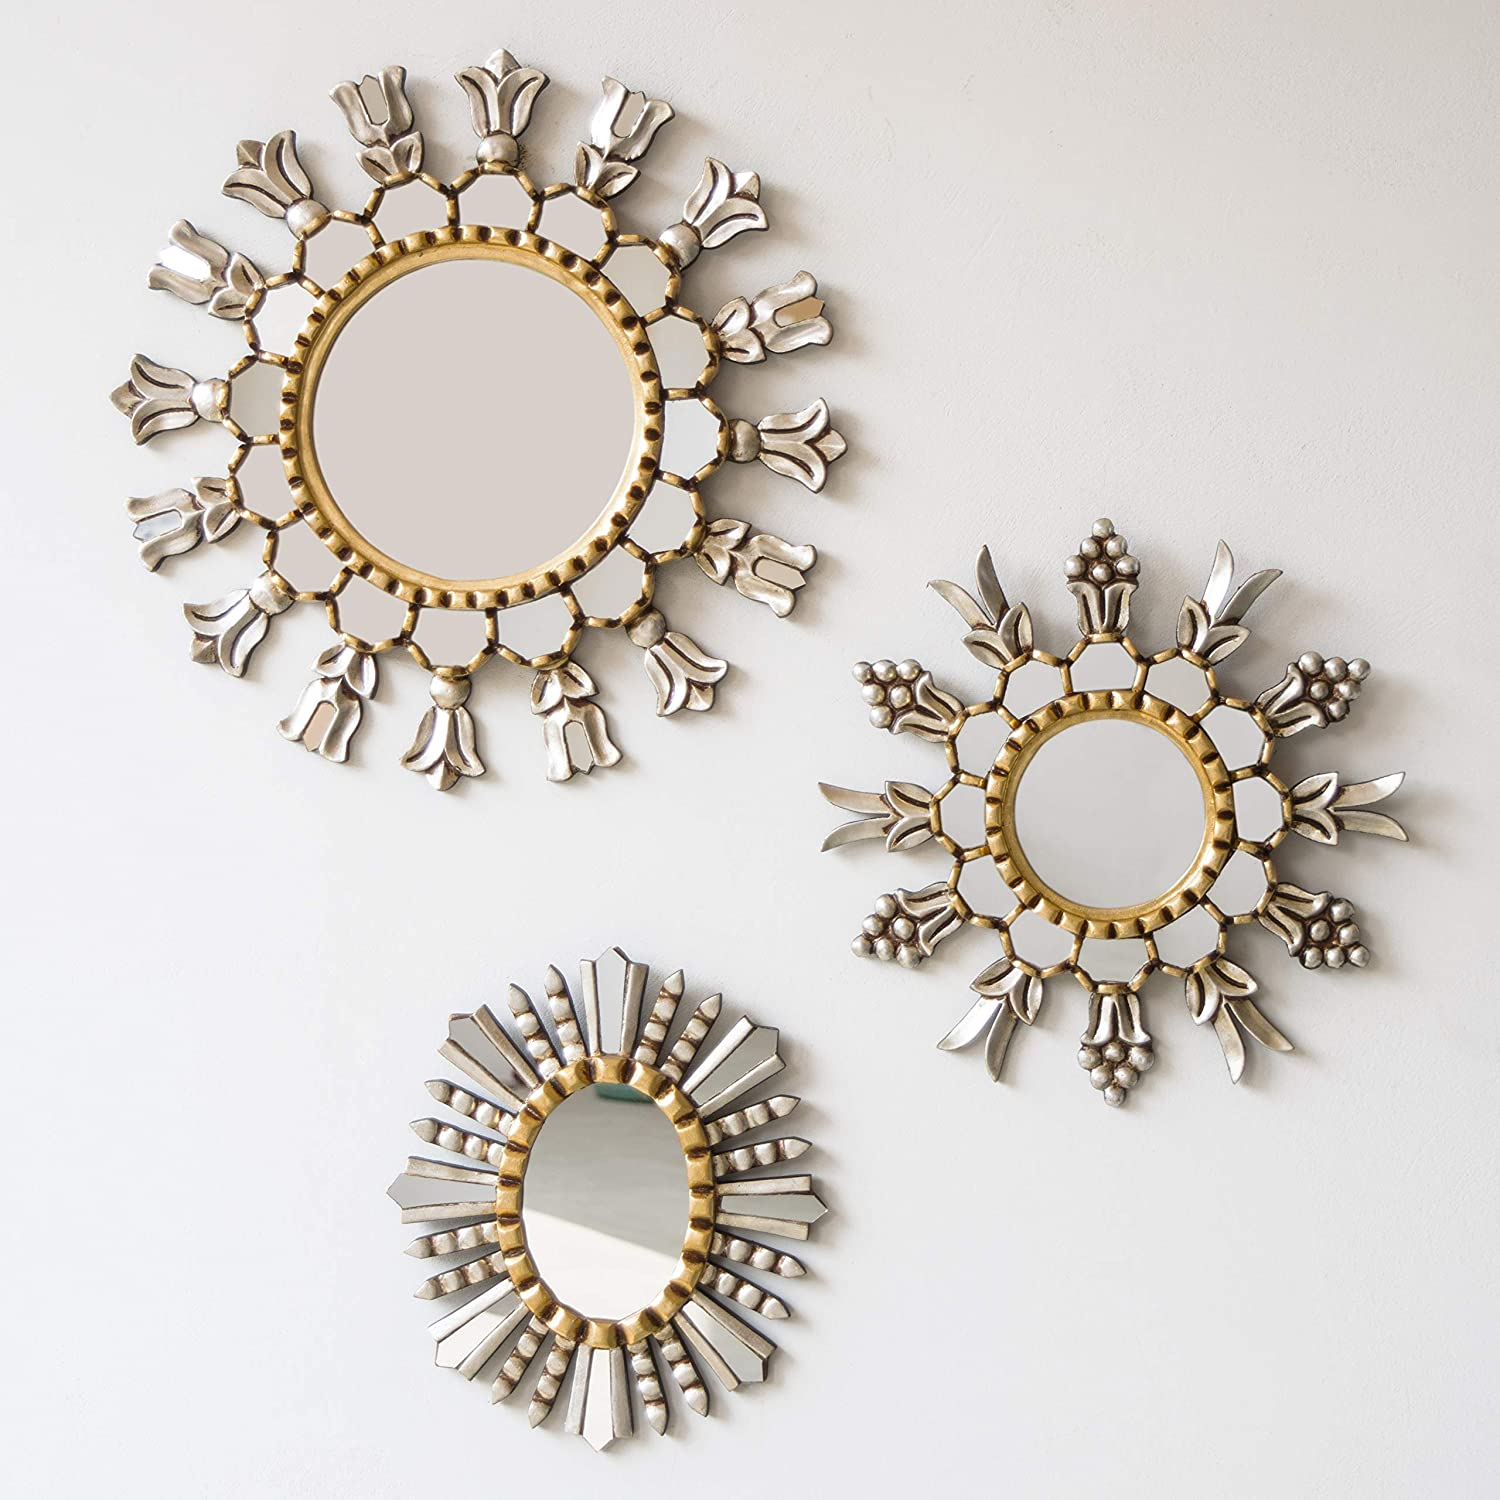 Amazon Com Peruvian Silver Gold Round Mirror Set 3 Collection Sunburst Mirror Wall Decor 17 7 13 77 And 12 Diameter Decorative Accents Mirror For Wall Hand Carved Wood Framed Wall Mirror Treasures Handmade